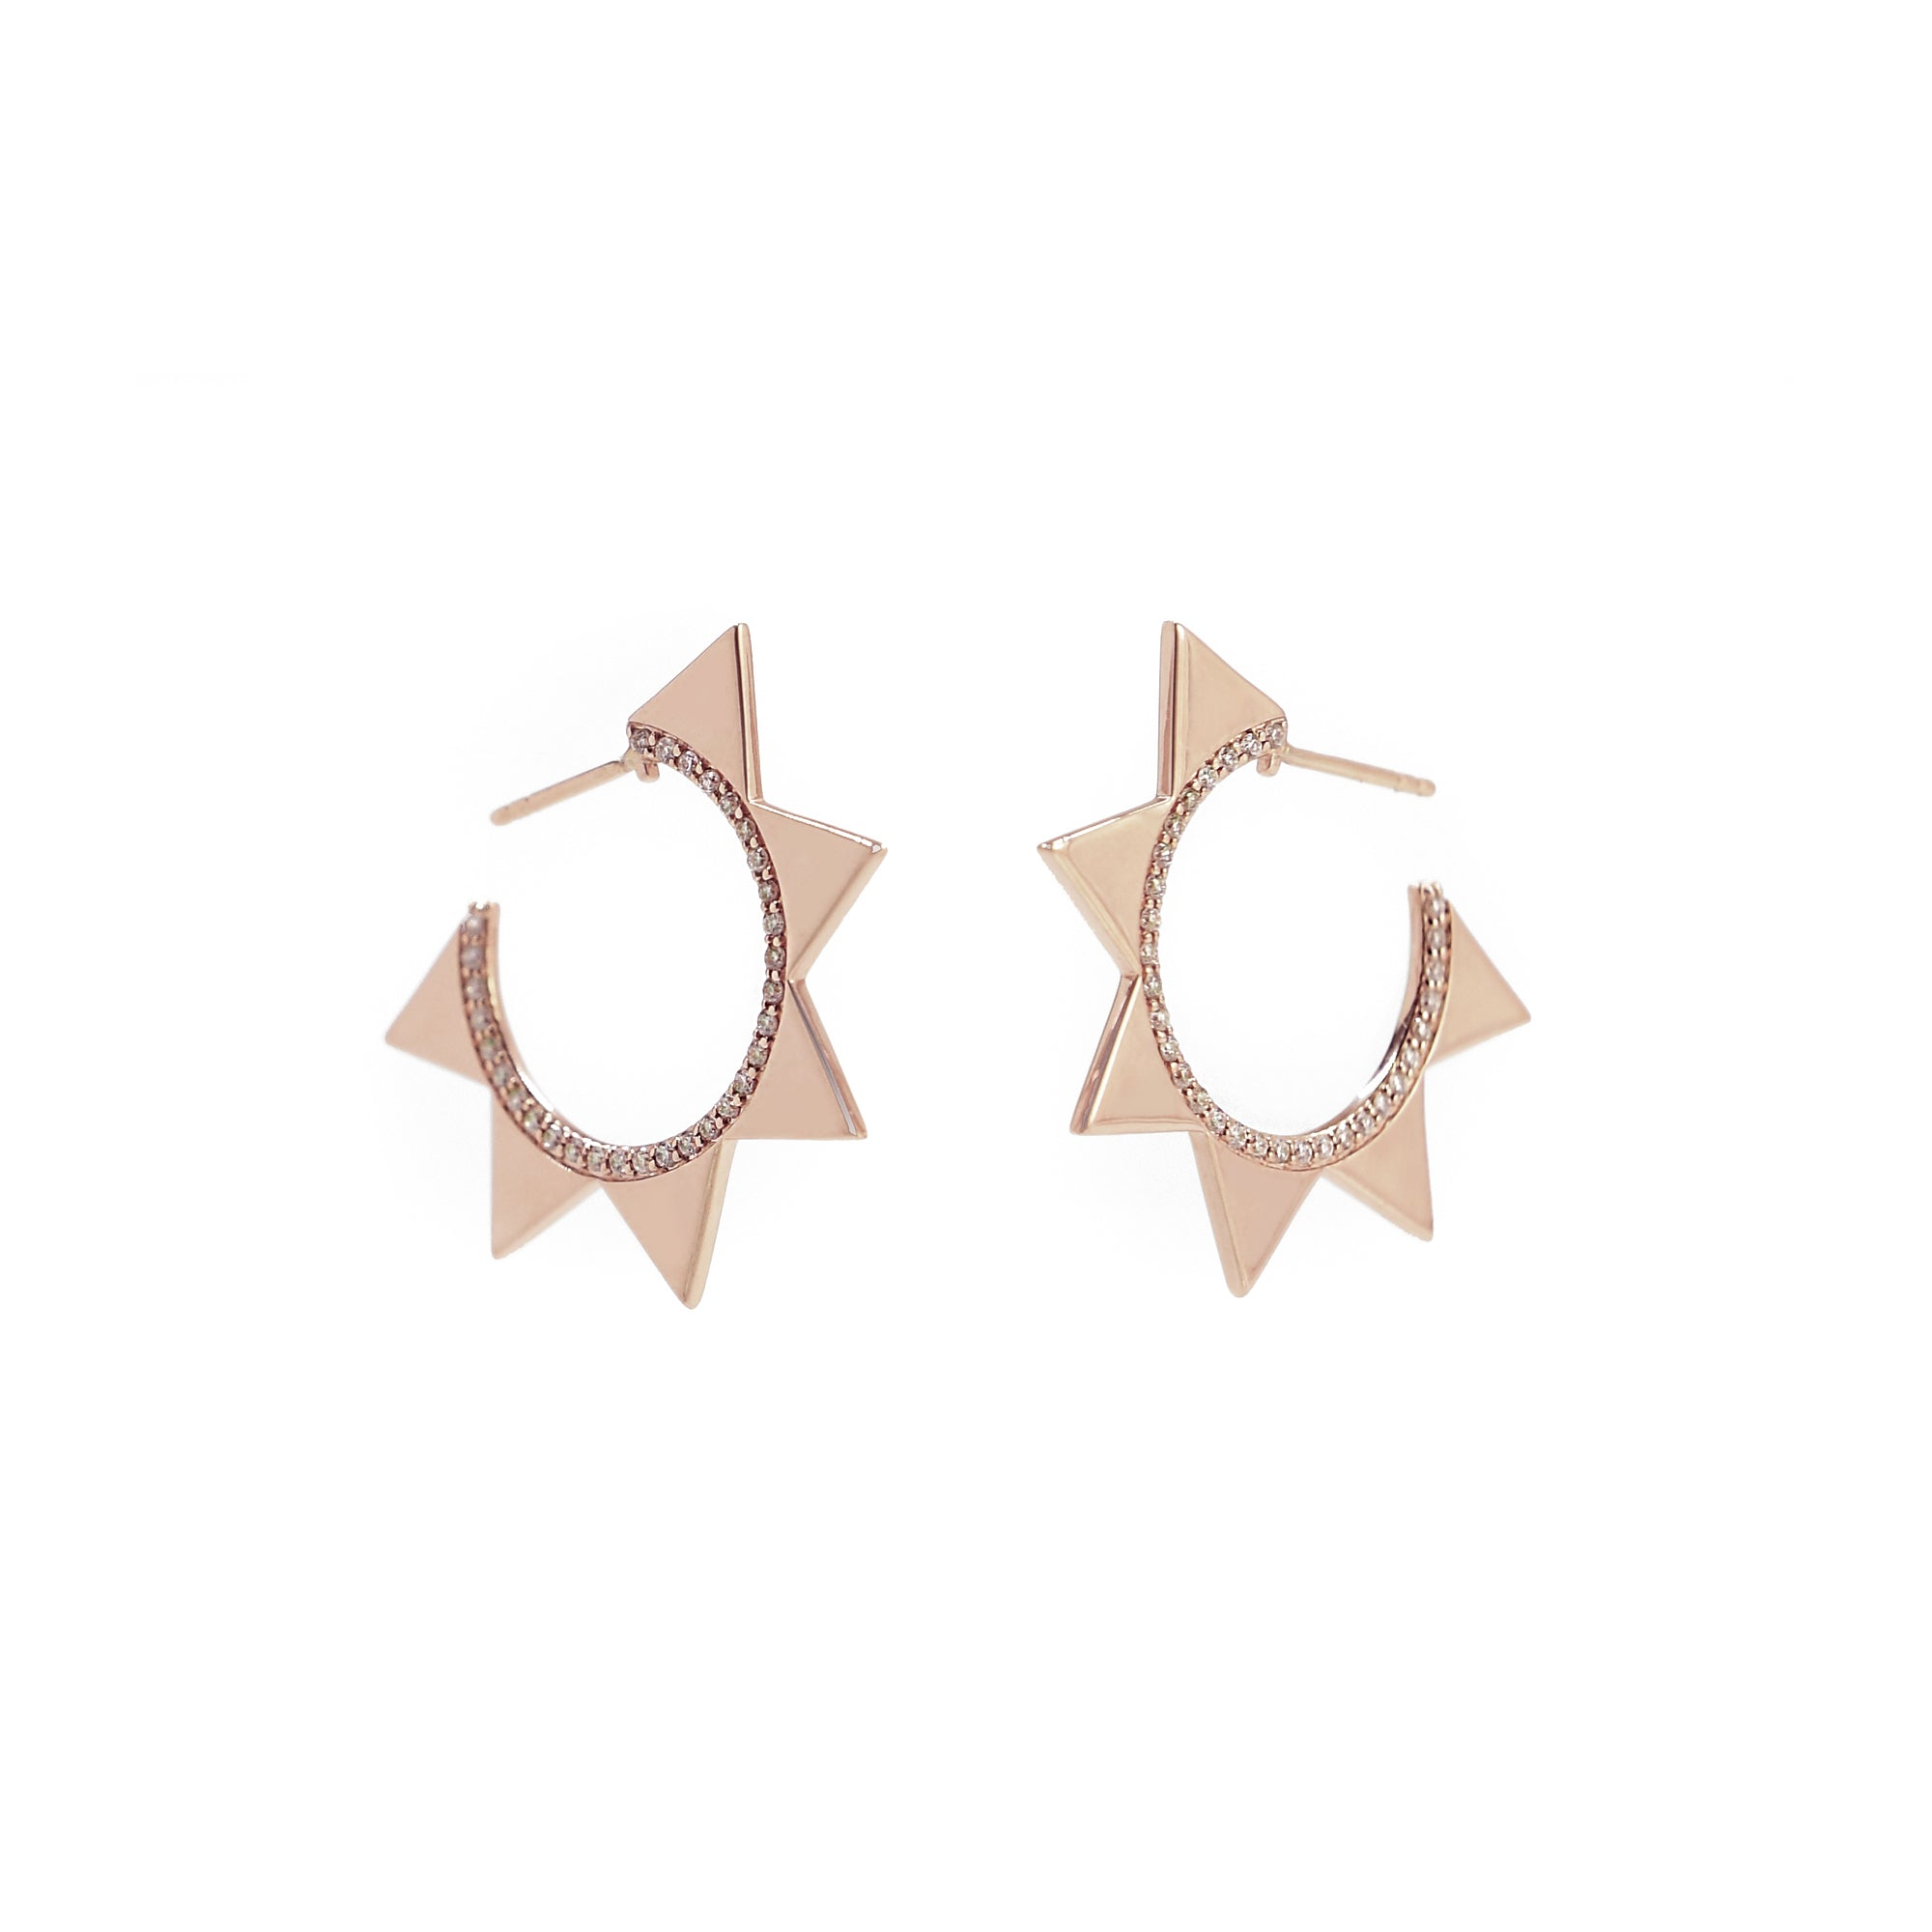 Venus Hoops - Bondeye - Earrings | Broken English Jewelry